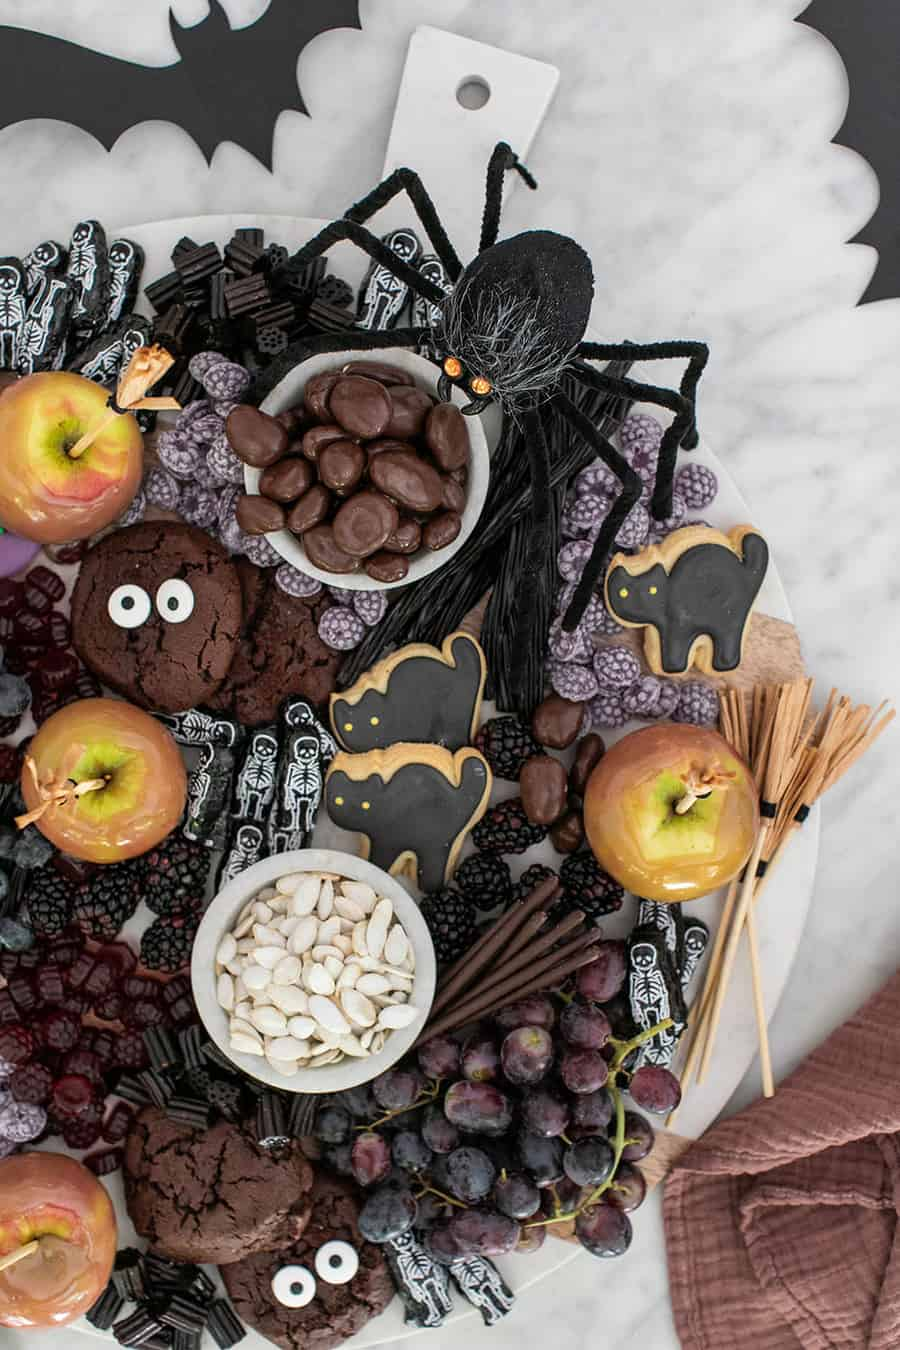 Board full of Halloween treats from cookies to caramel apples, candies and more!